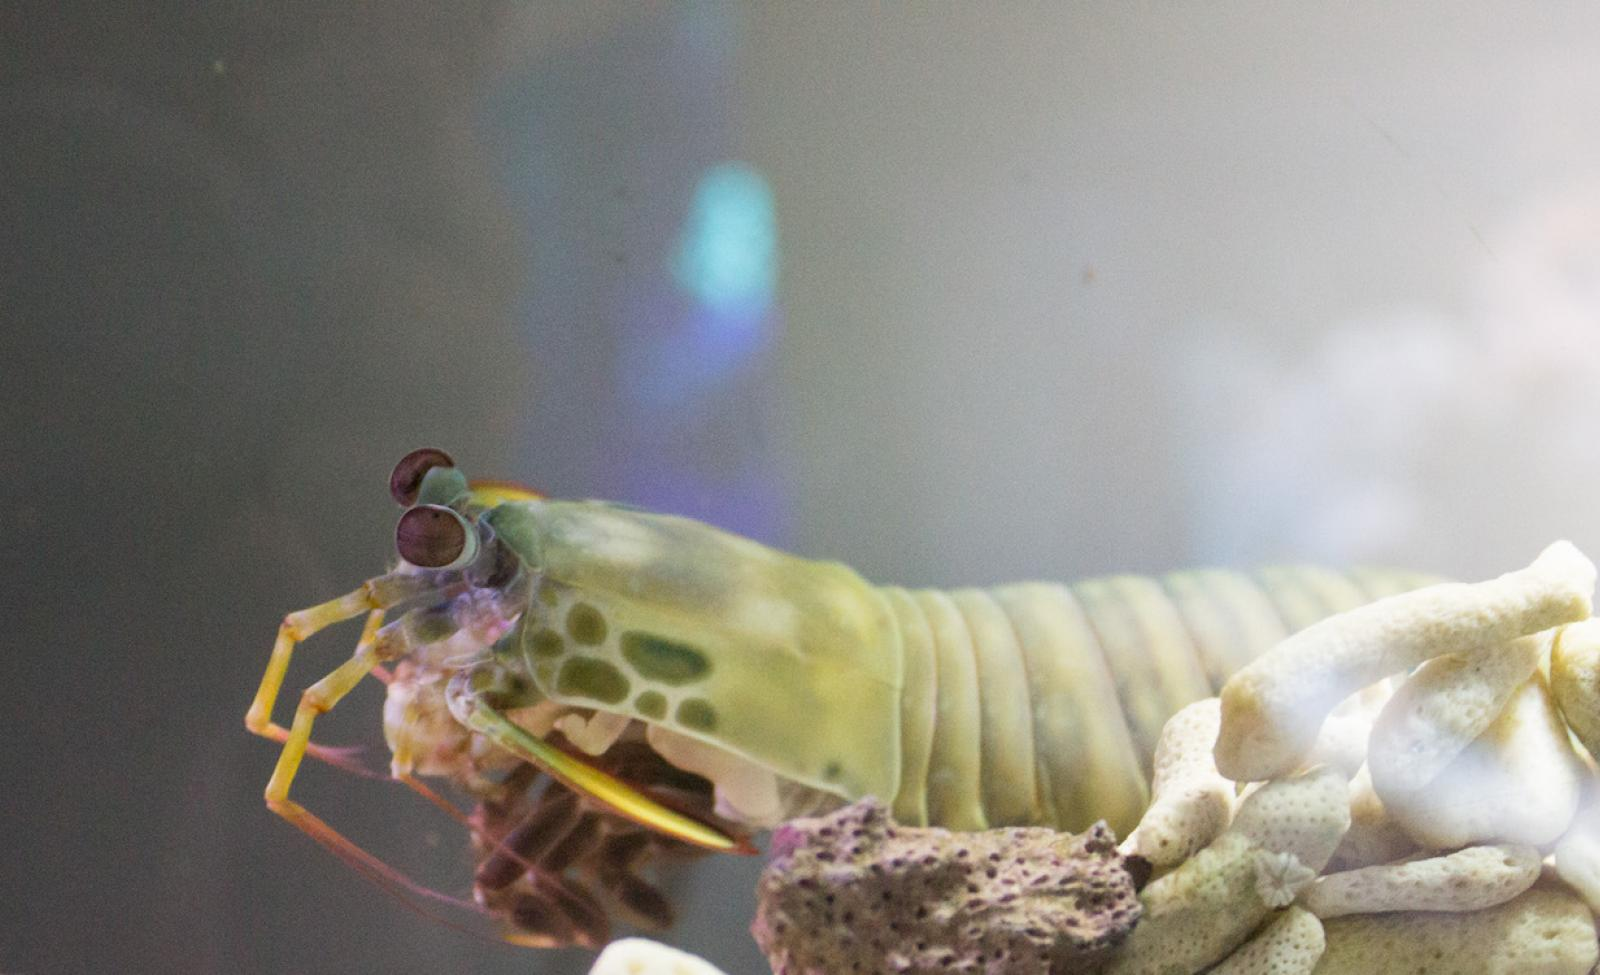 Mantis shrimp can live in aquariums